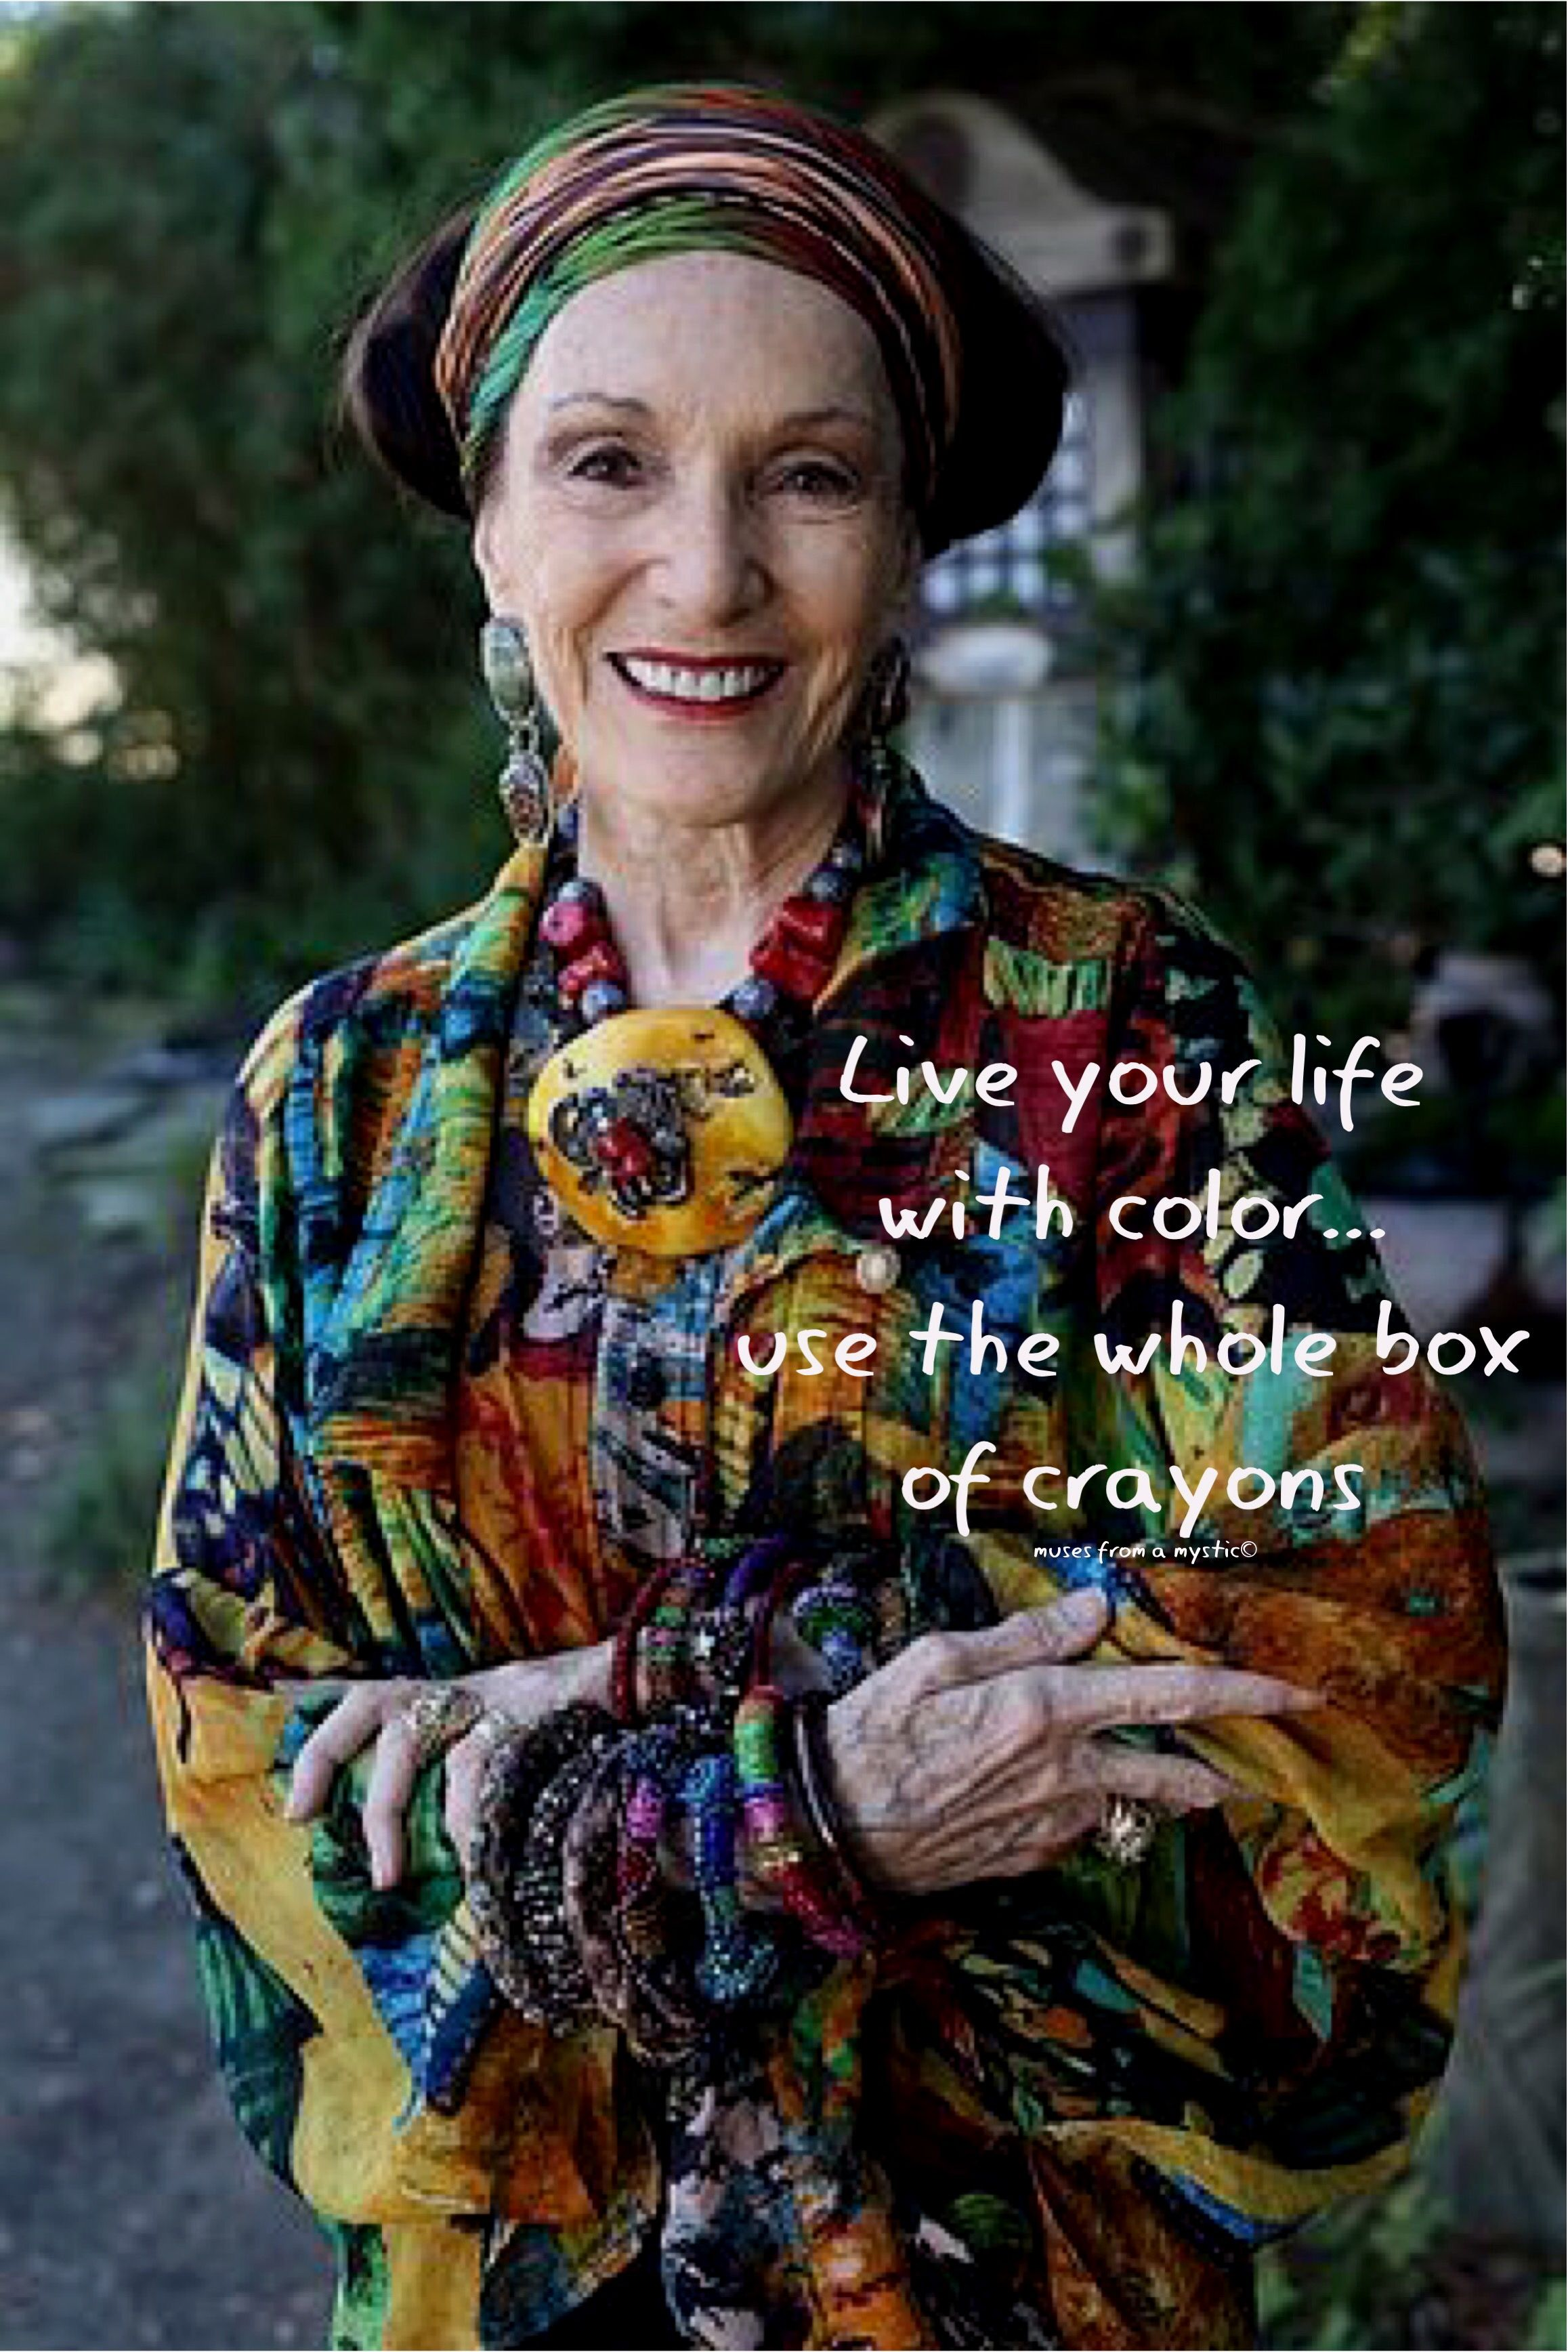 Live your life with color... #aginggracefully